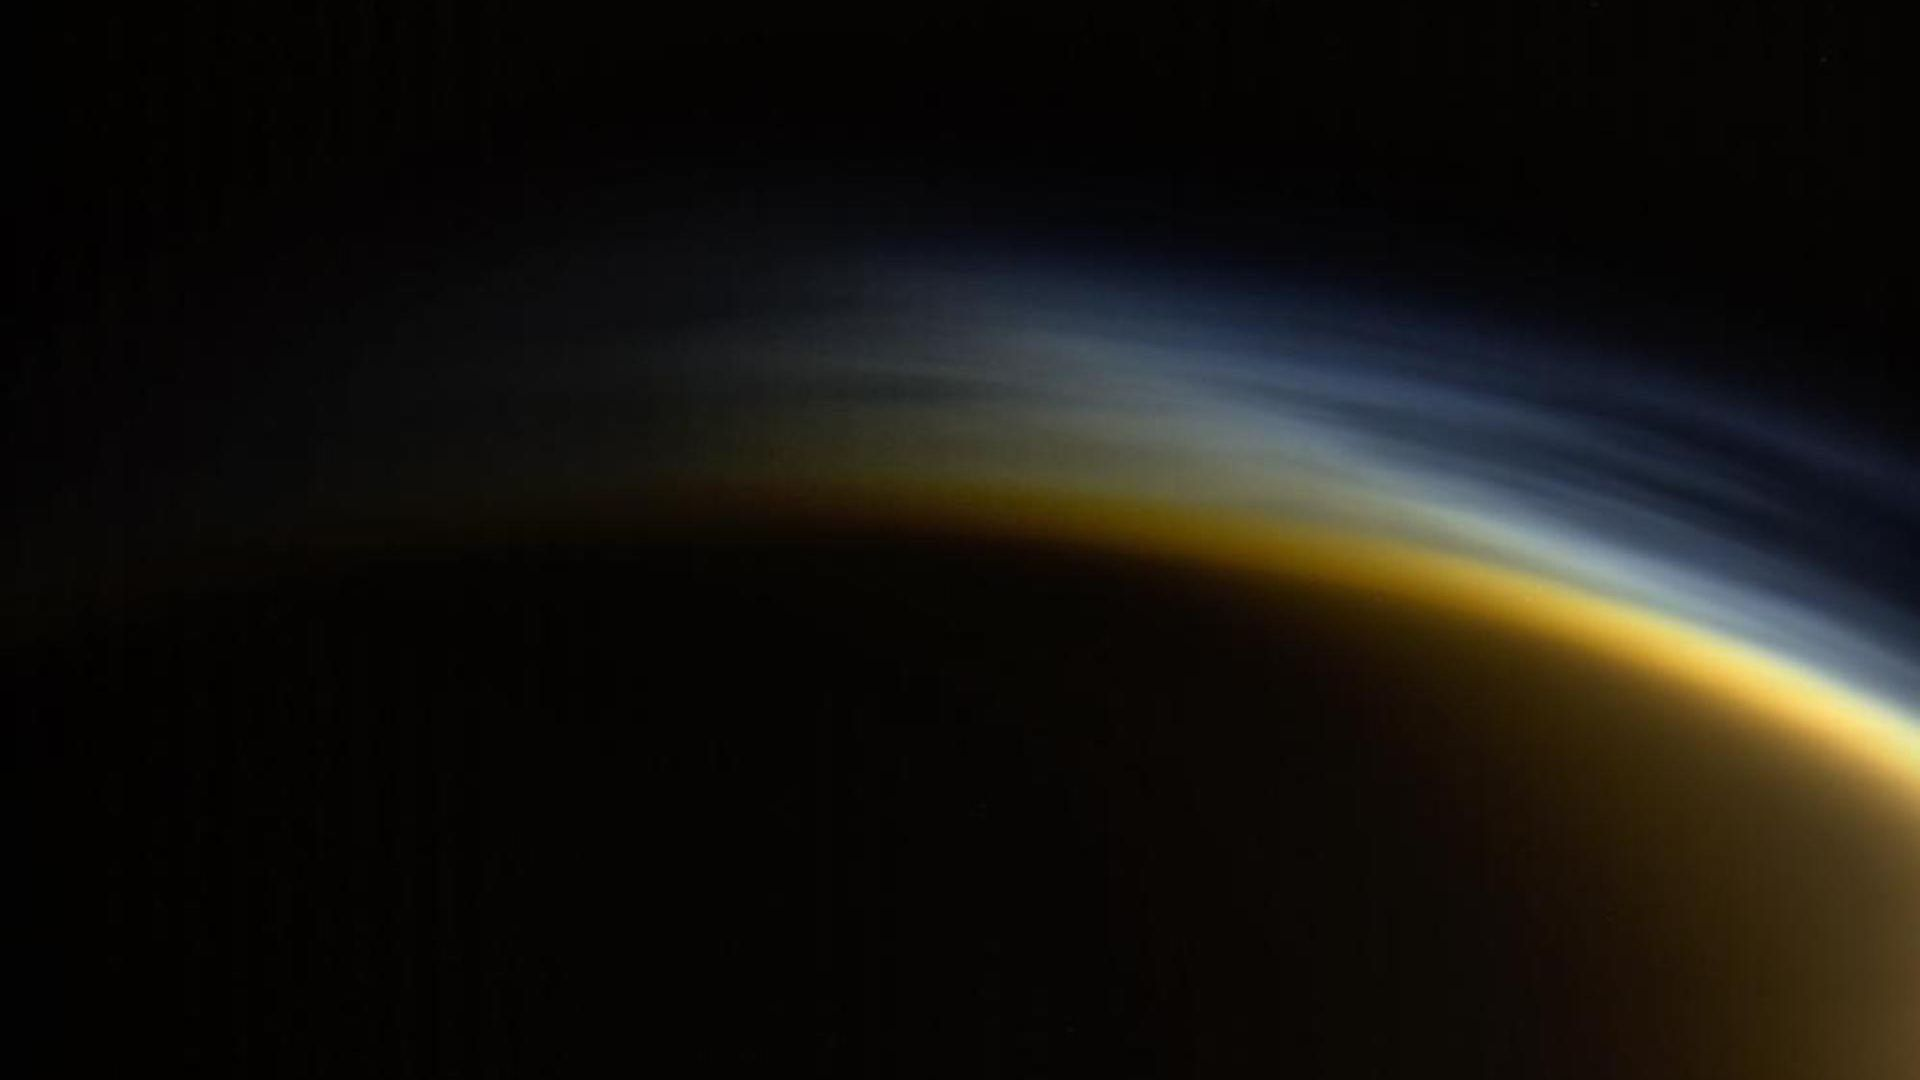 Cosmic rays change atmosphere of Saturn's moon, Titan - Axios